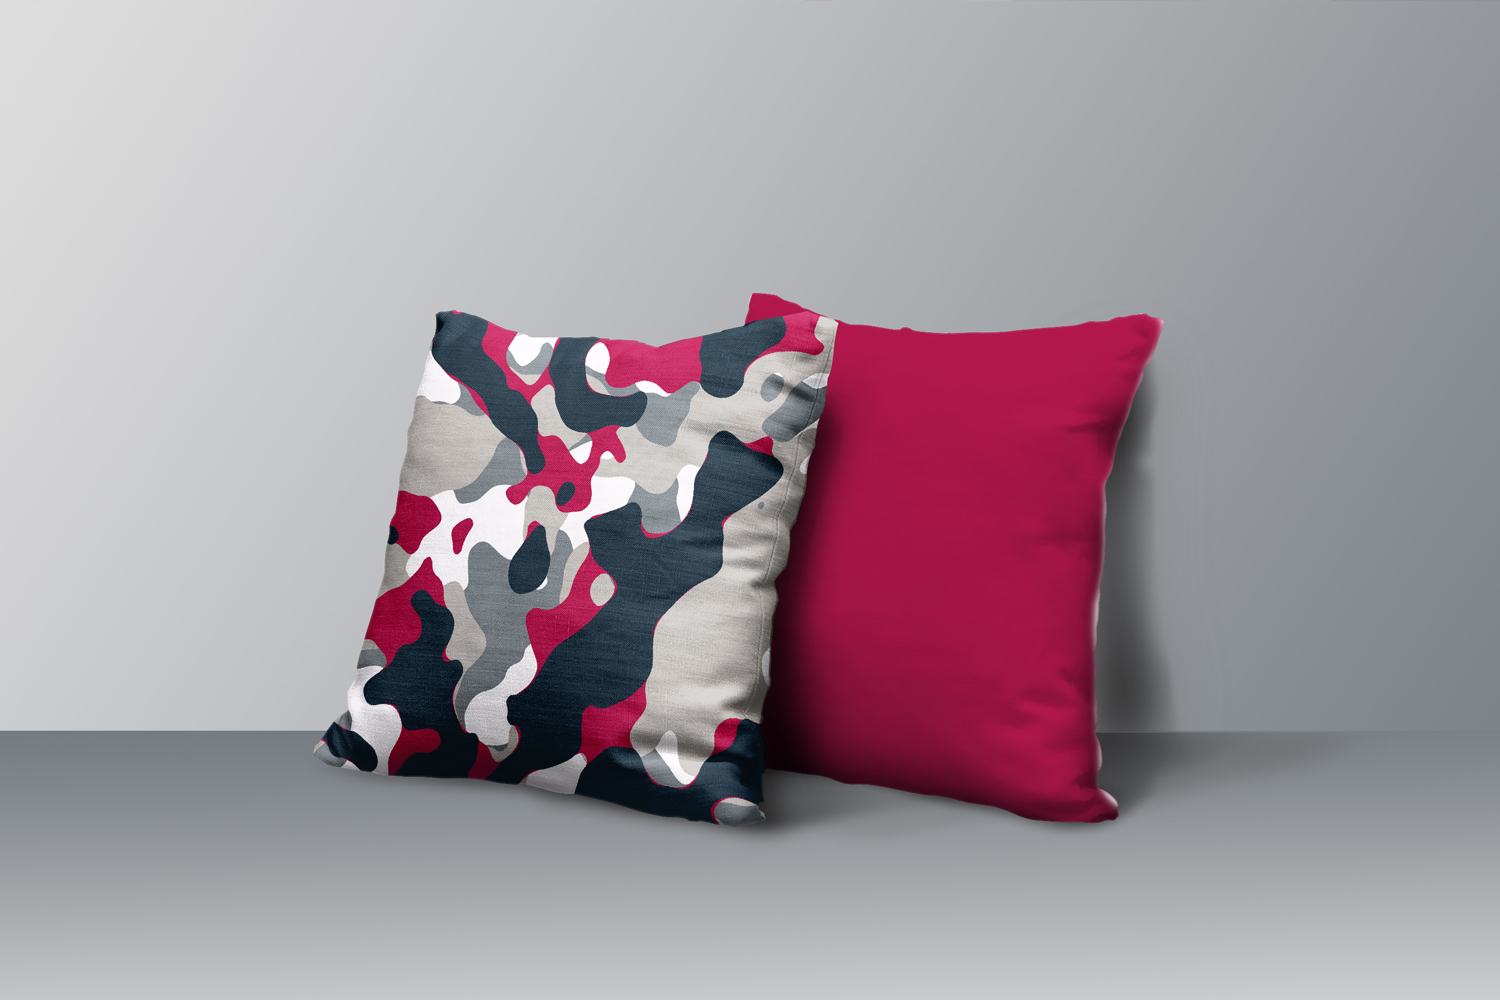 40 Alternative Camouflage Paper Designs example image 2